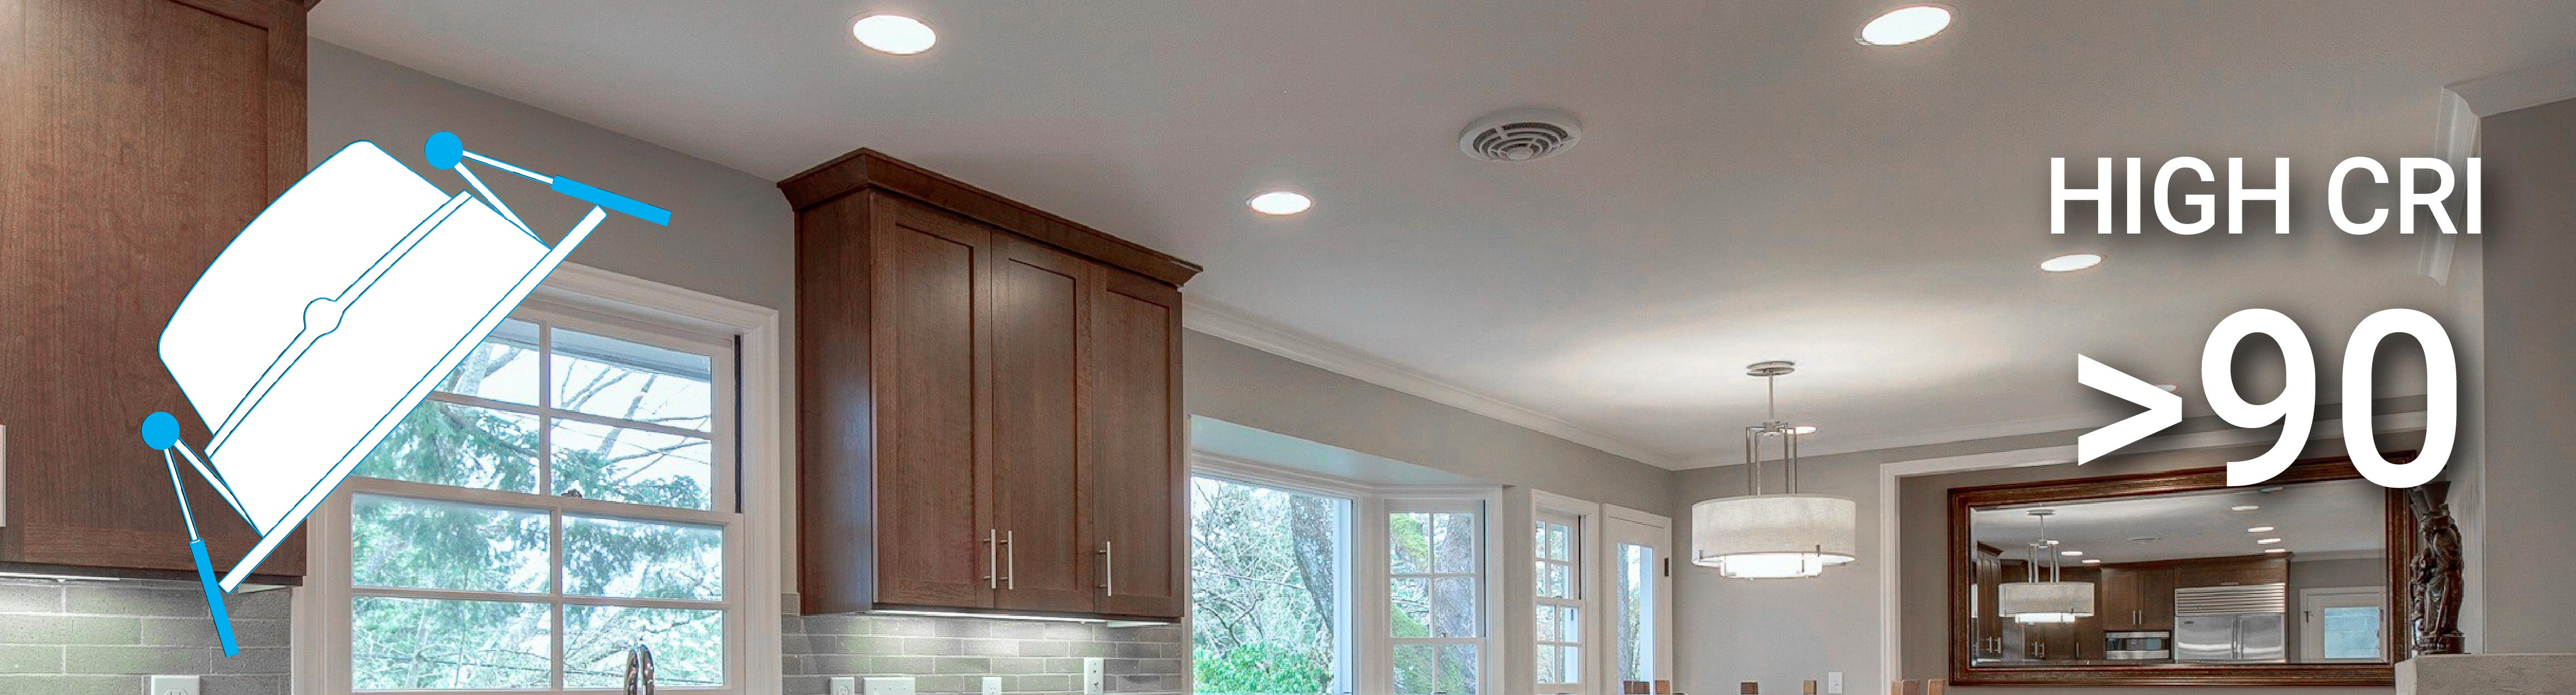 4 Inch Dimmable Led Downlights 10w Retrofit Cri 90 Ledmyplace Wiring Diagram Of Triac Dimming Downlight Connecting Over 1 A 80 For Mean They Are Good Retail Or Any Other Commercial Application When The Objective Is To Accurately Display